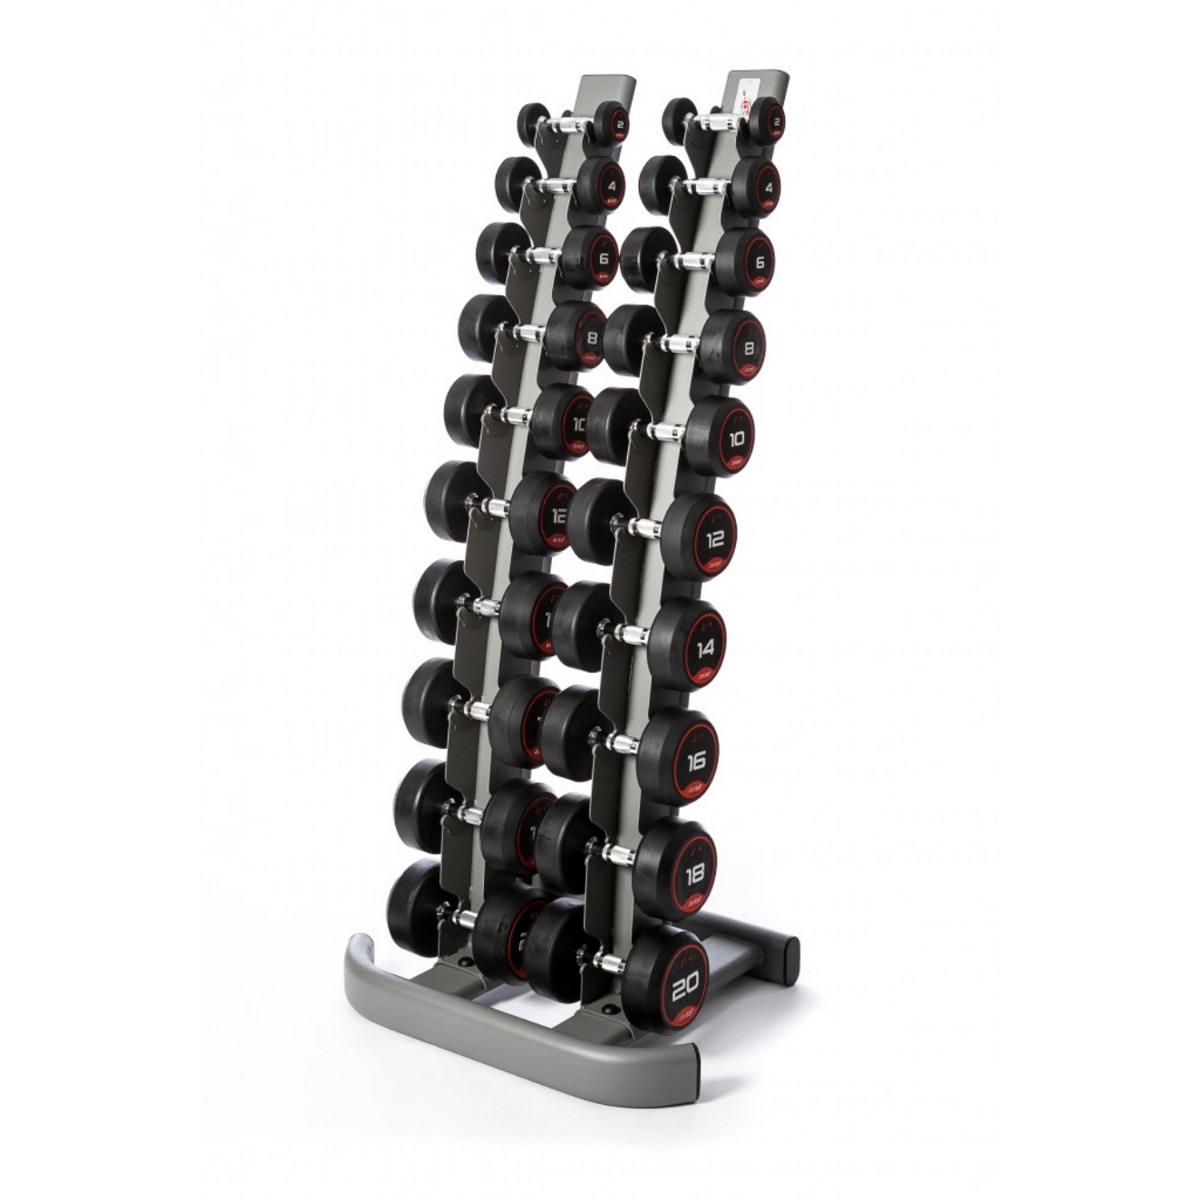 Jordan Rubber Dumbbell Set 2-20kg